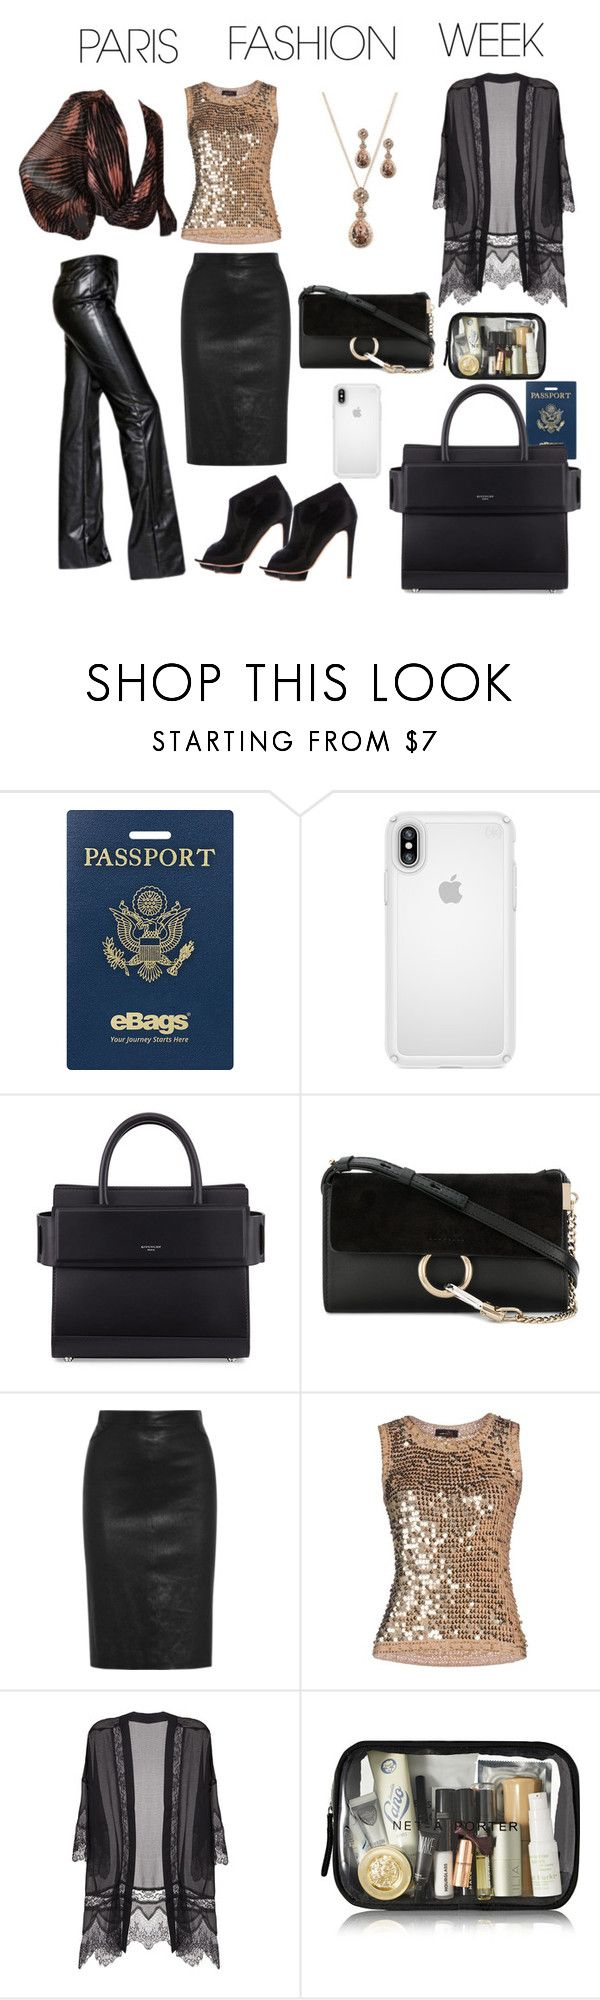 """""""Day or Evening"""" by leaff88 ❤ liked on Polyvore featuring eBags, Speck, Givenchy, Chloé, Lush Clothing, parisfashionweek and Packandgo"""